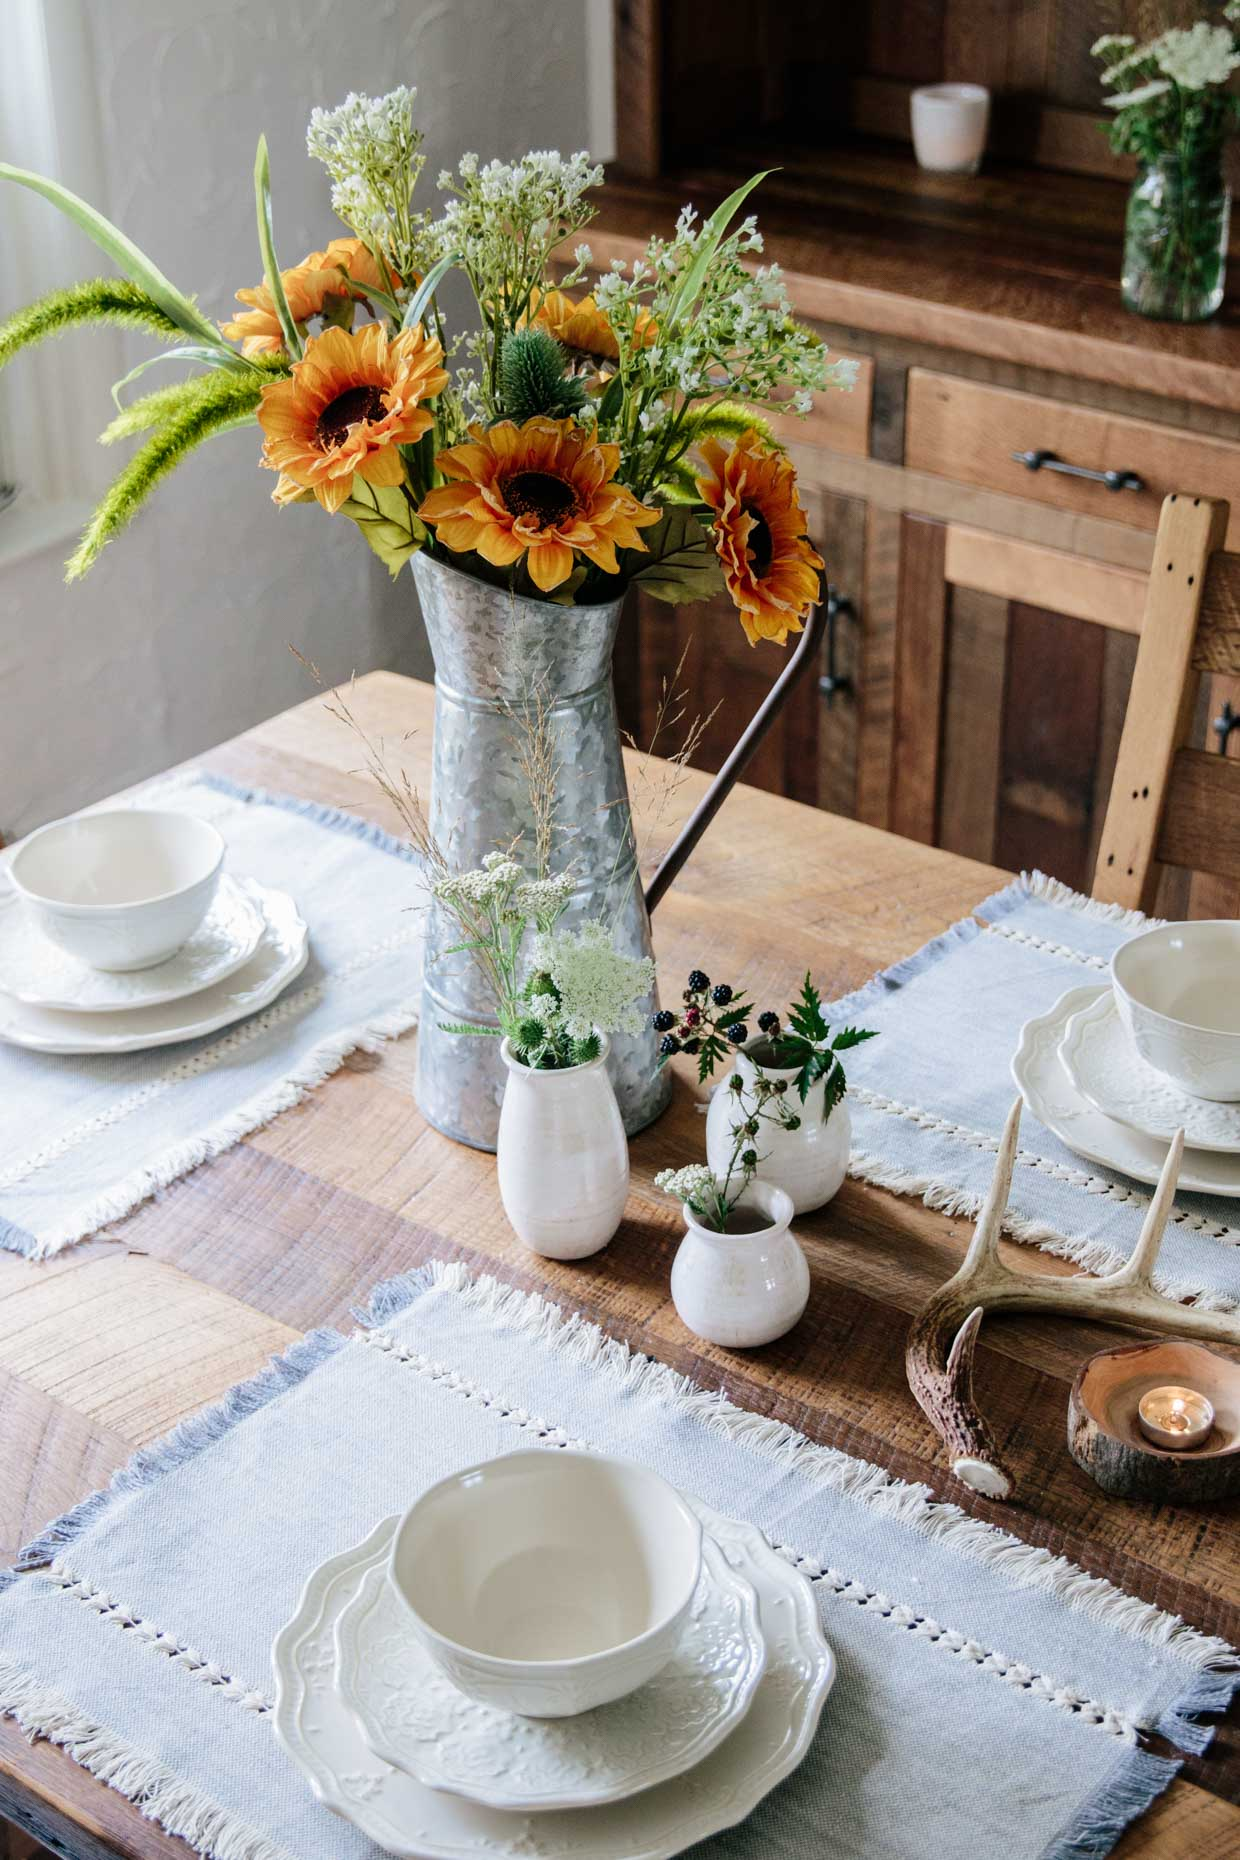 Meagan Brandon of Meagan's Moda shares late summer transitional farmhouse style tablescape for dining room using Walmart home decor, Pioneer Woman lace dishes